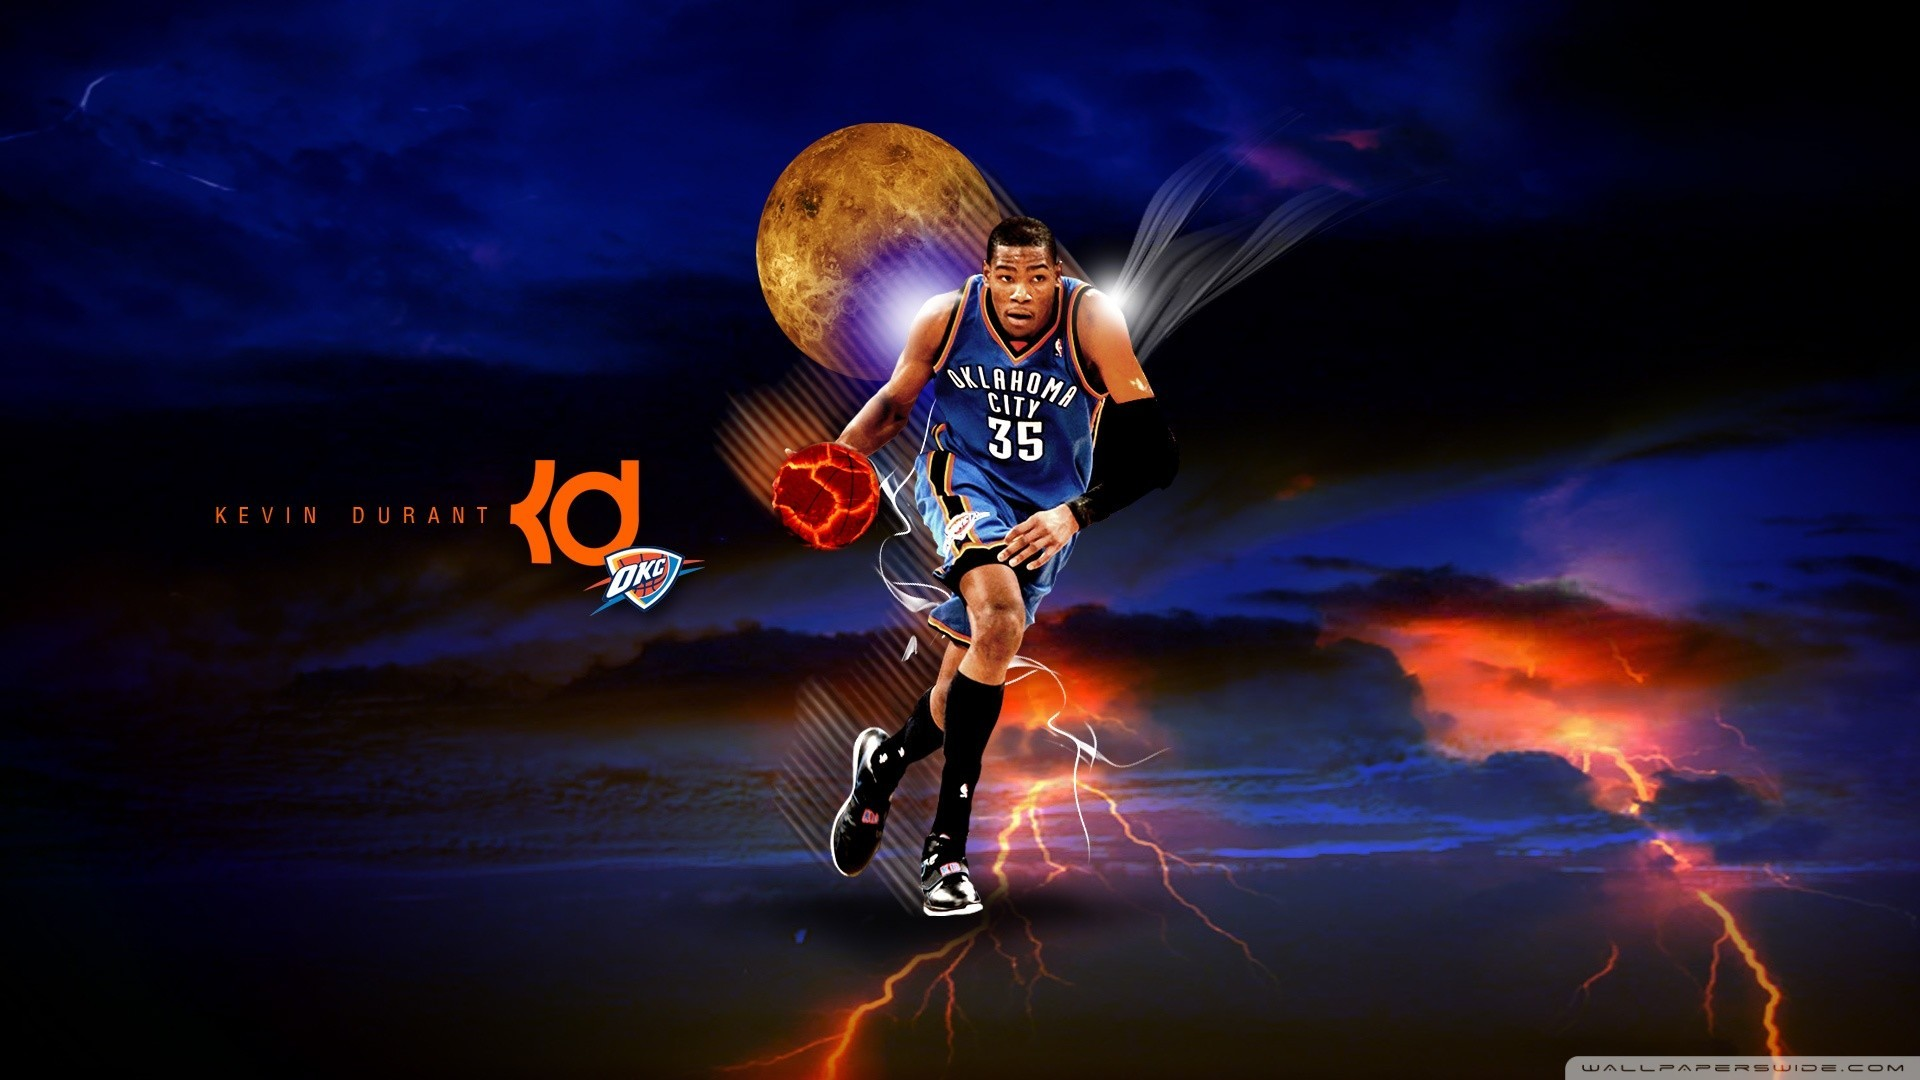 1920x1080 Kevin Durant Russell Westbrook Wallpaper | HD ...